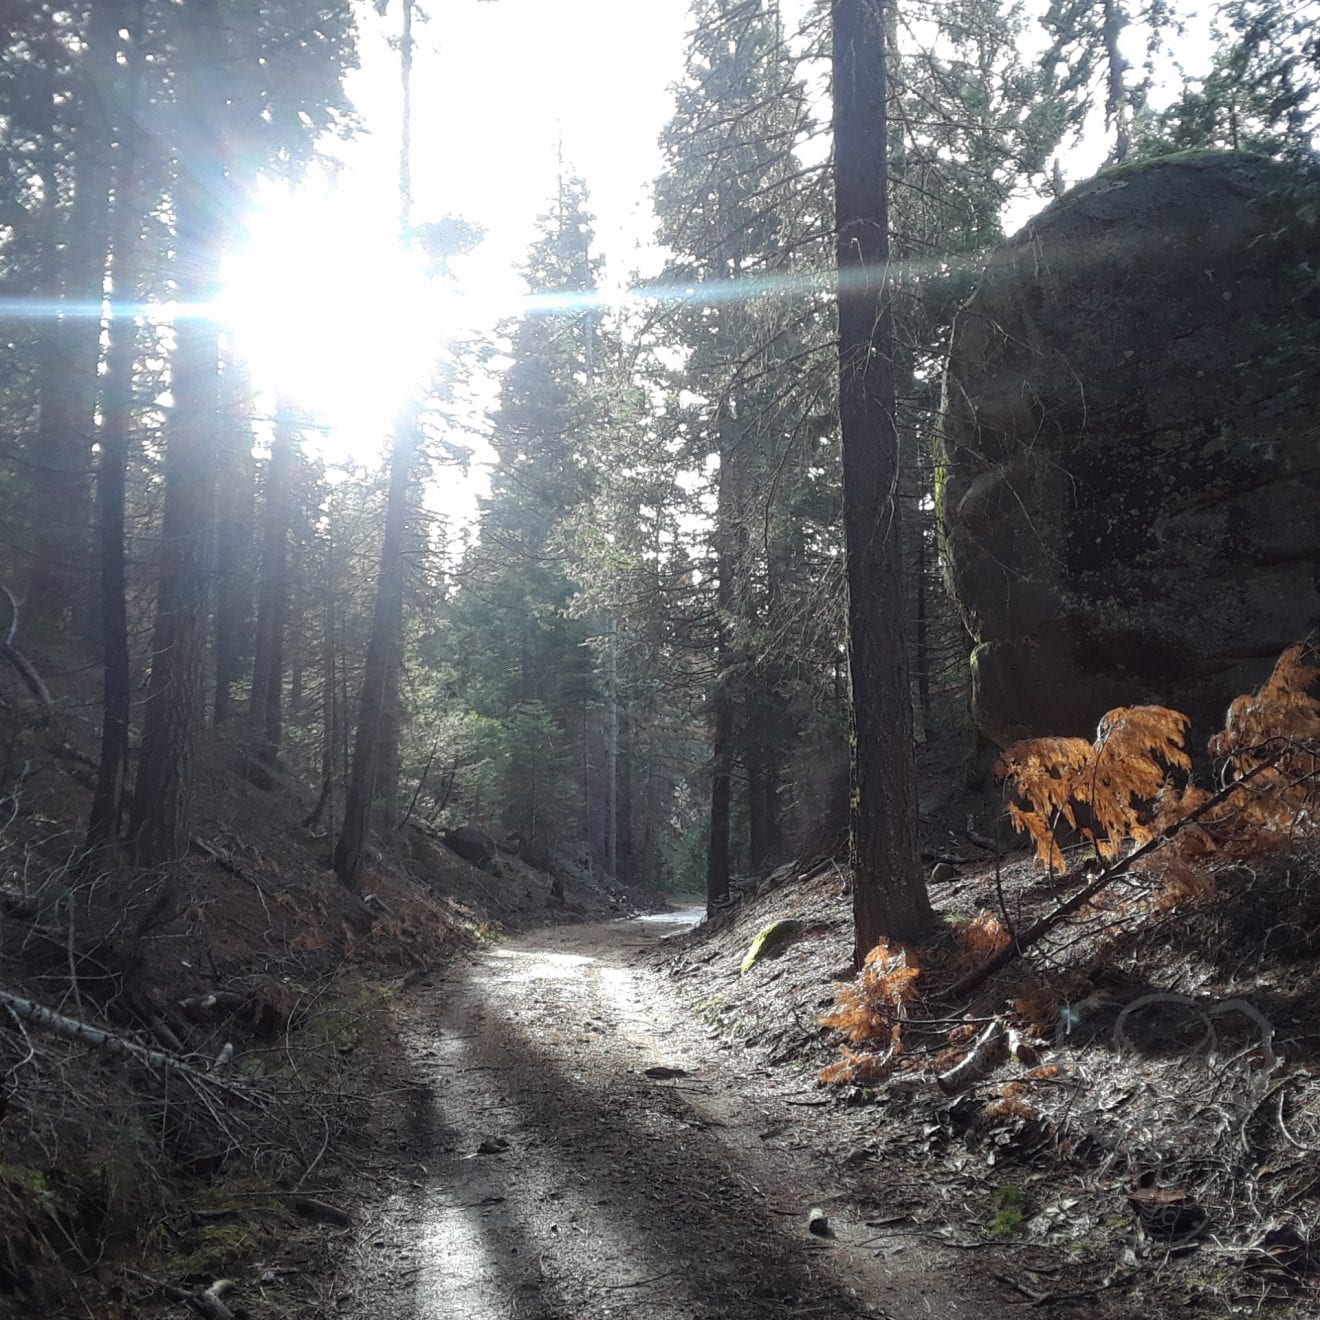 Trail in Pinecrest, California